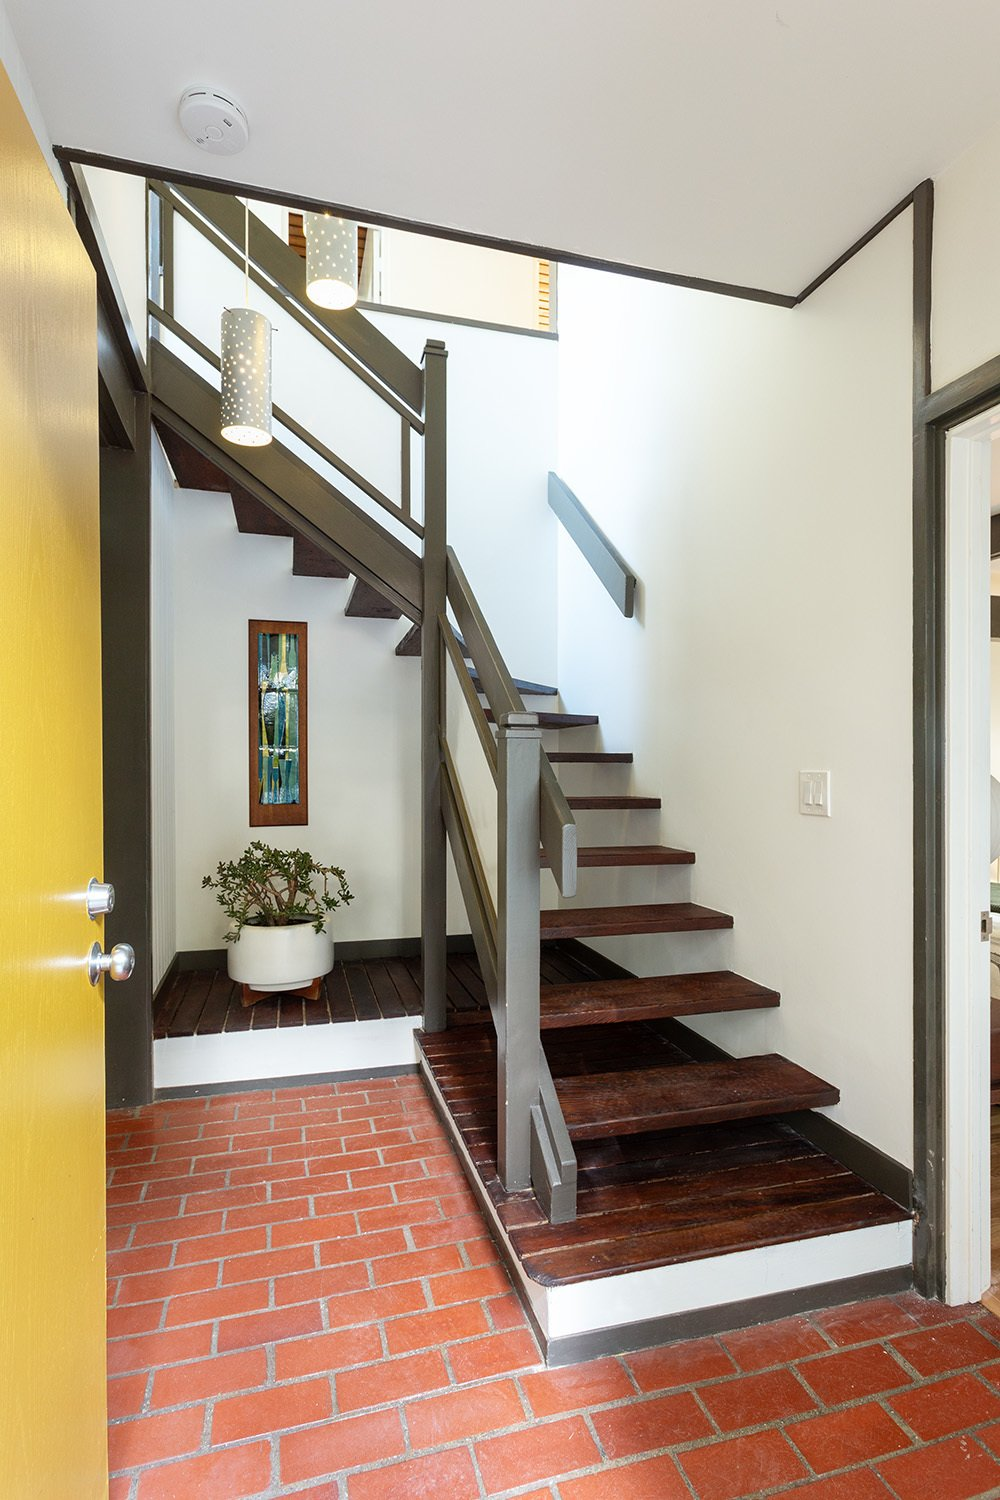 Malinoff designed the home while training to become an architect at the University of Southern California School of Architecture. The recently renovated interior showcases many original details, including red brick floors, simple wooden details, and a midcentury color palette.  Photo 3 of 17 in A Dapper Midcentury Under the Hollywood Sign Lists for $1.65M